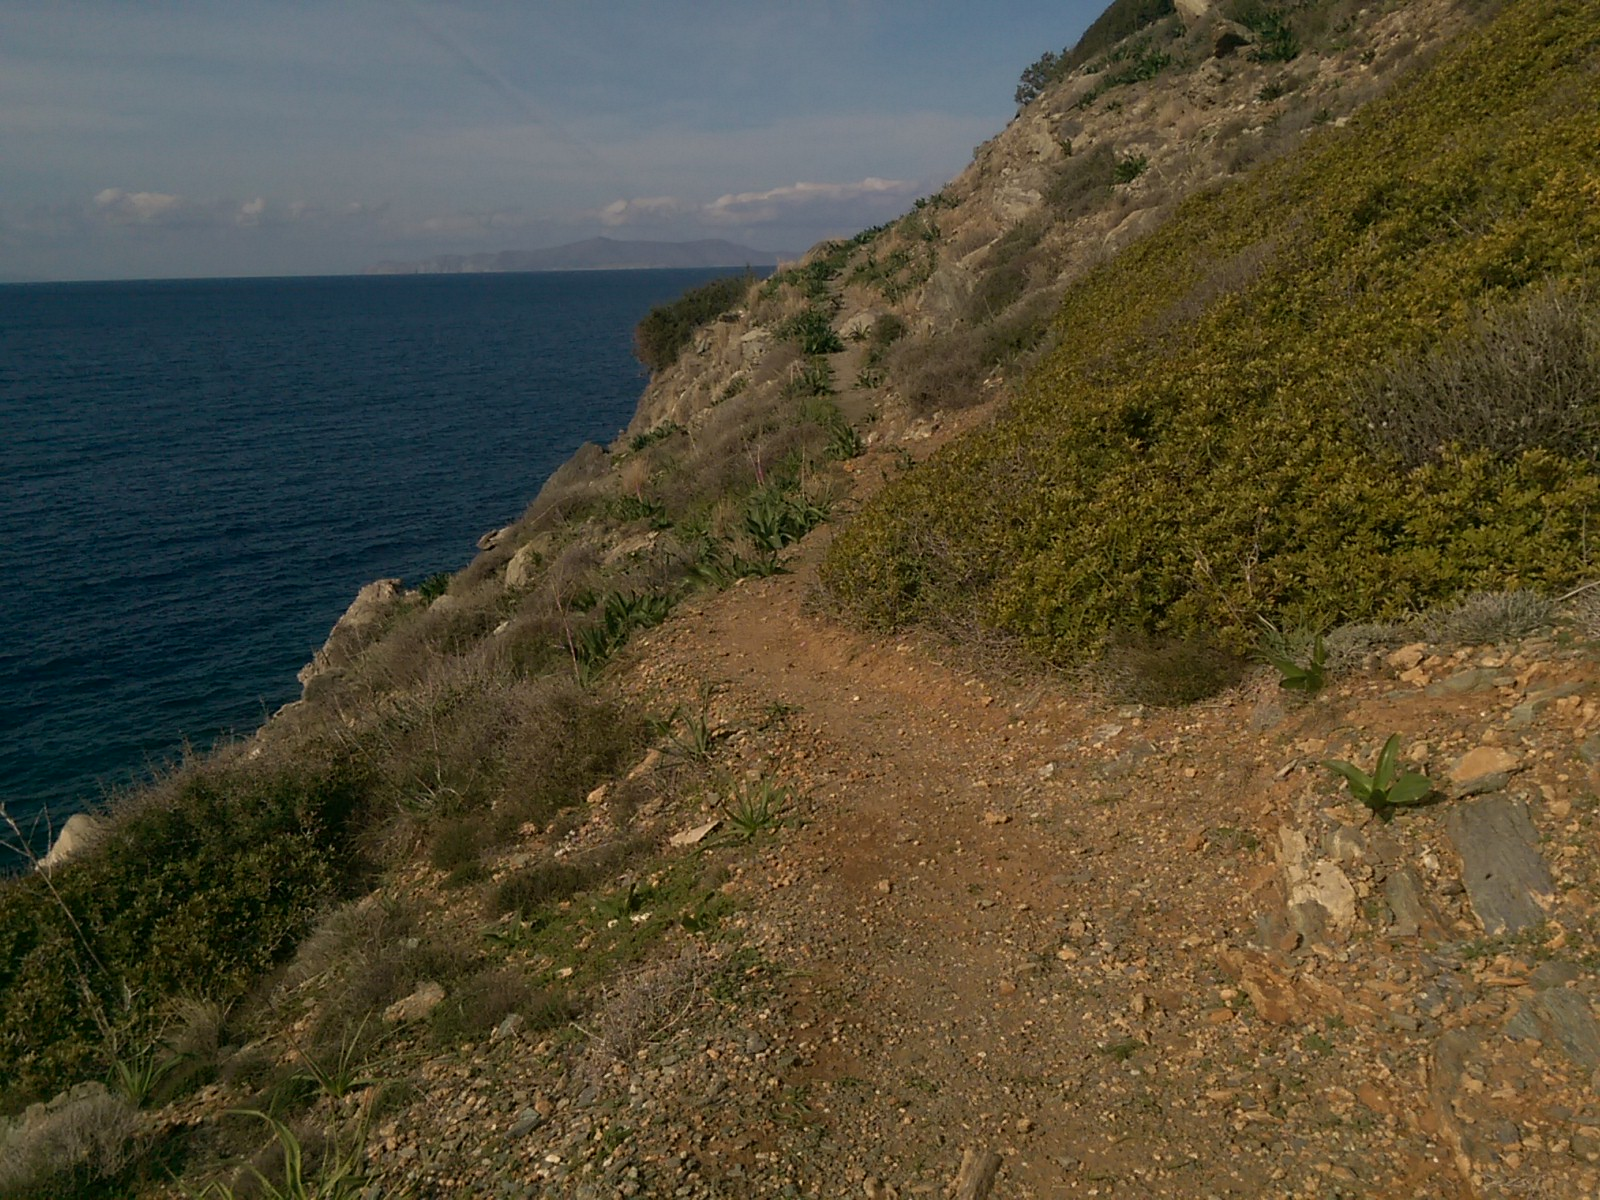 A narrow dirt trail runs along a gorse-covered hill by the sea